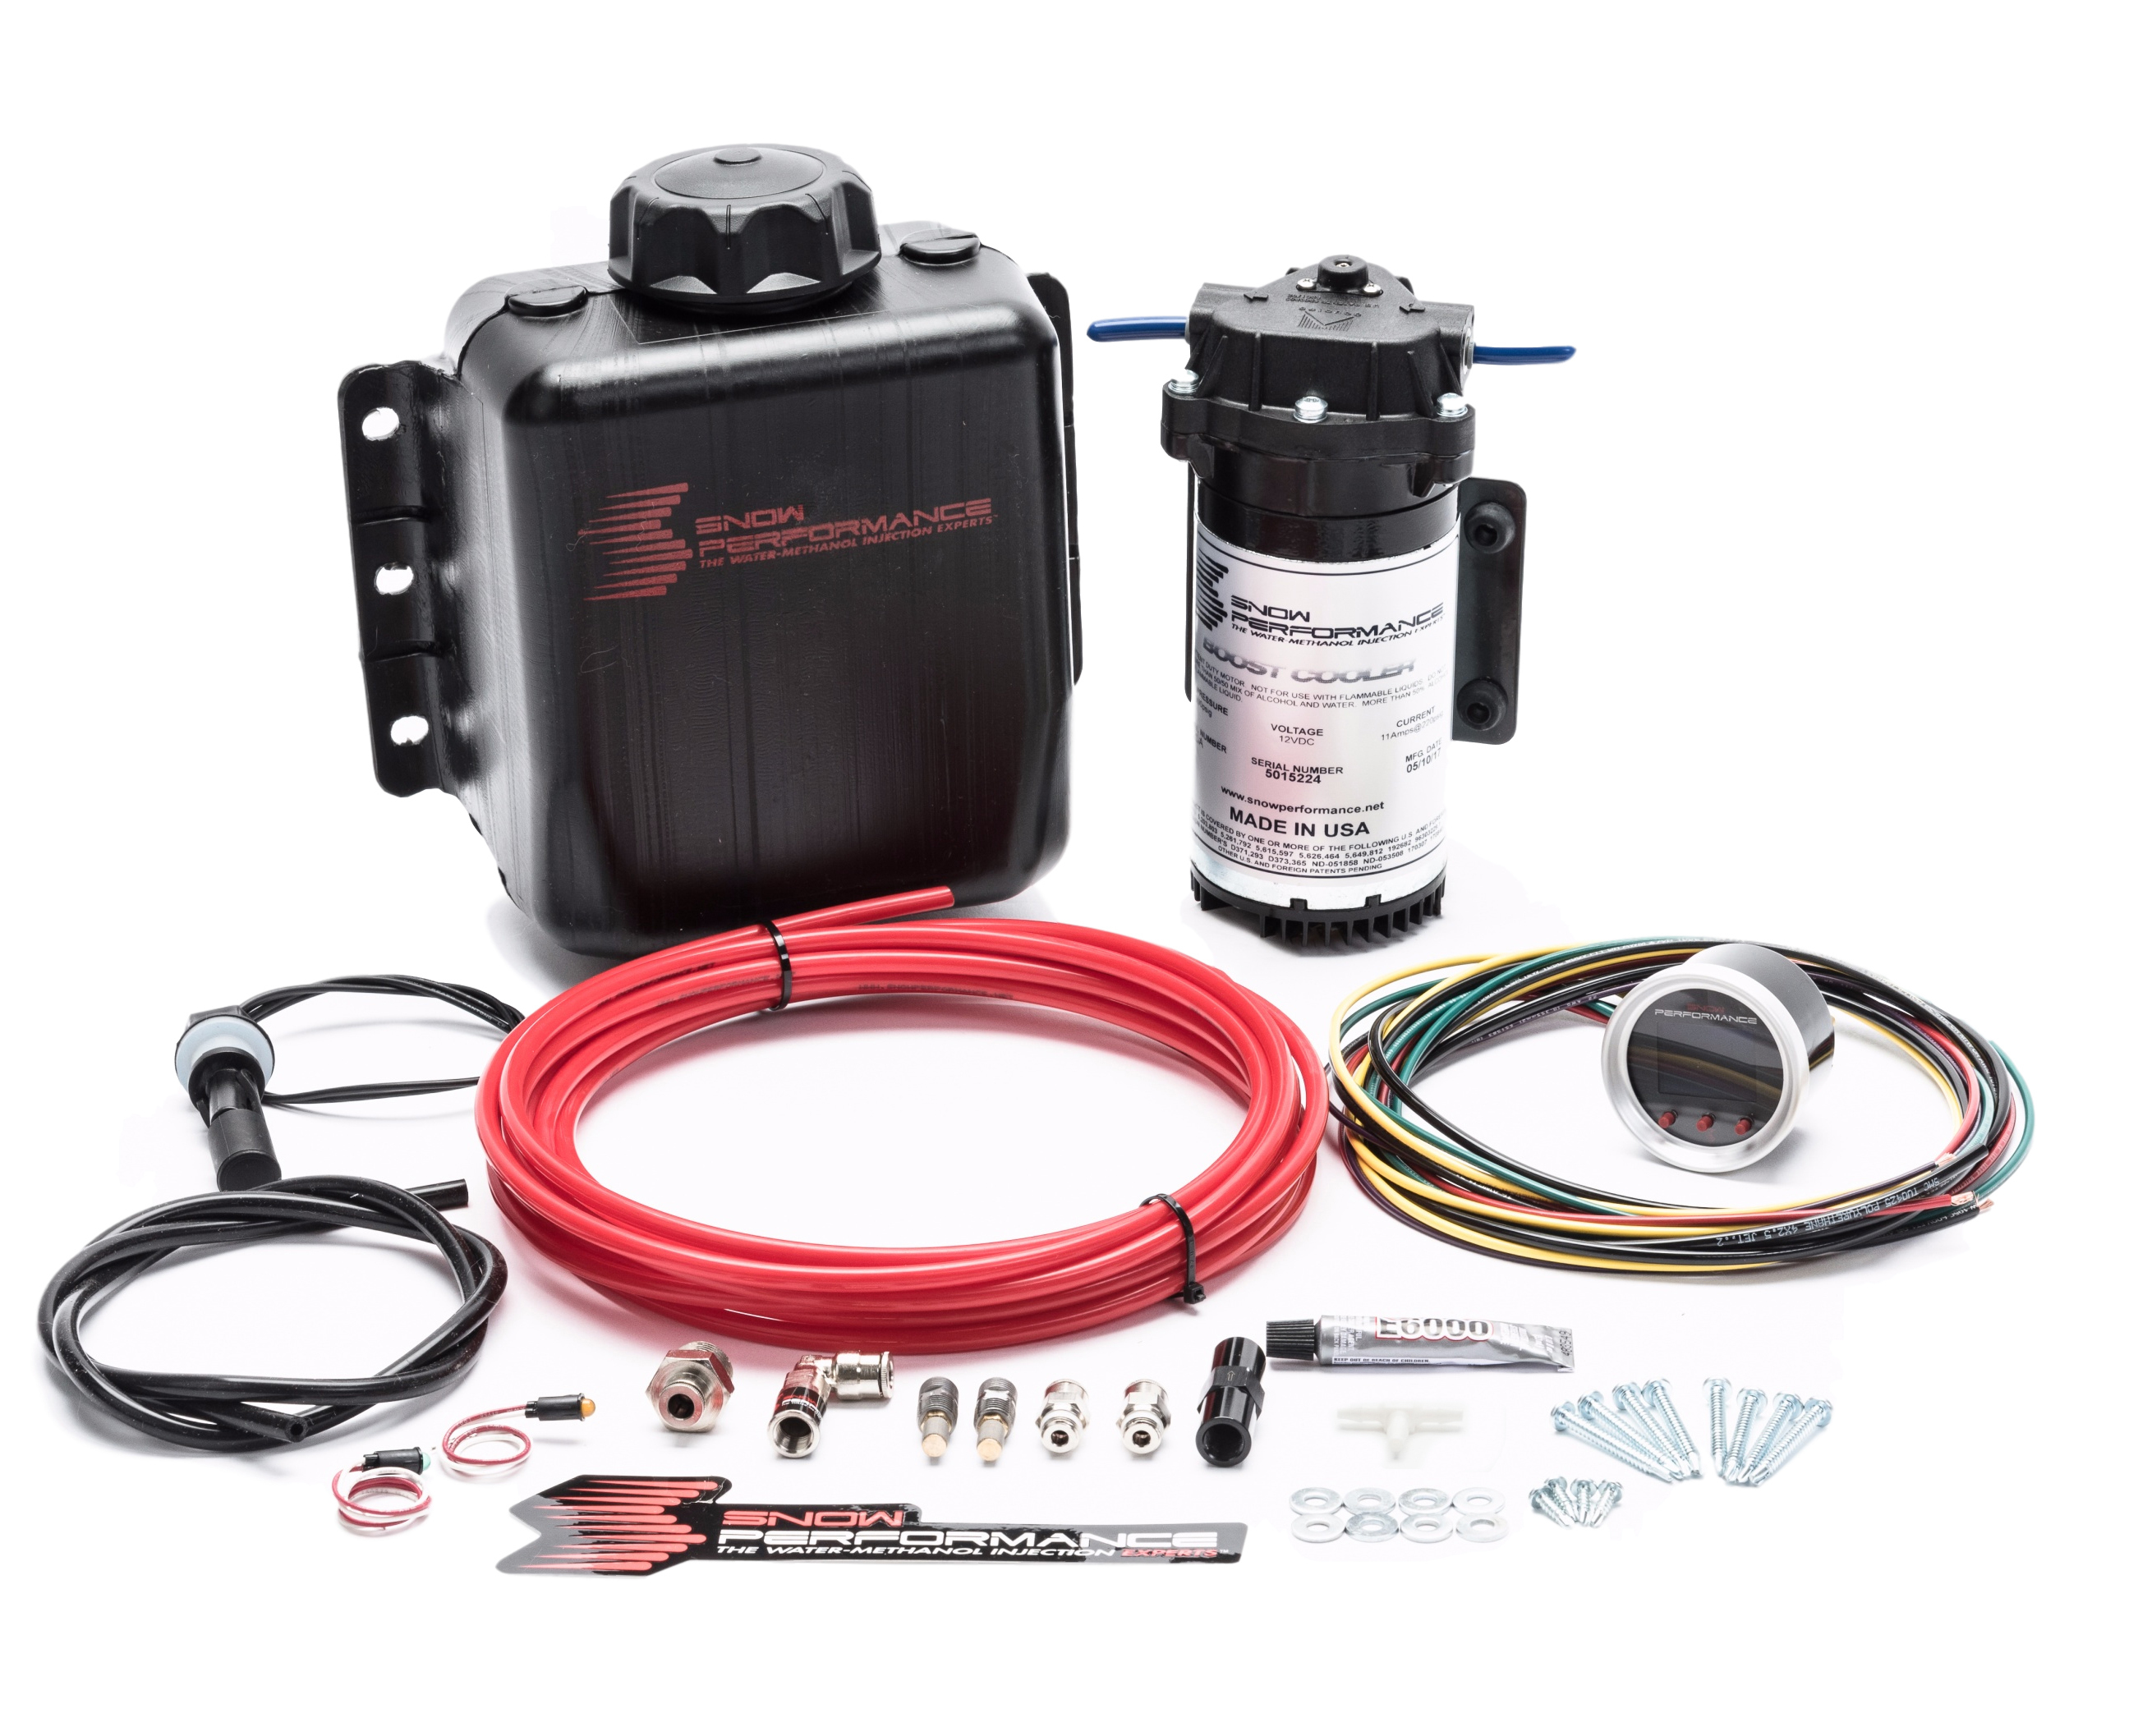 Snow Performance 210 Water Injection System, Stage 2 Boost Cooler, Progressive Controlled, 3 qt Reservoir, Universal Gas, Kit